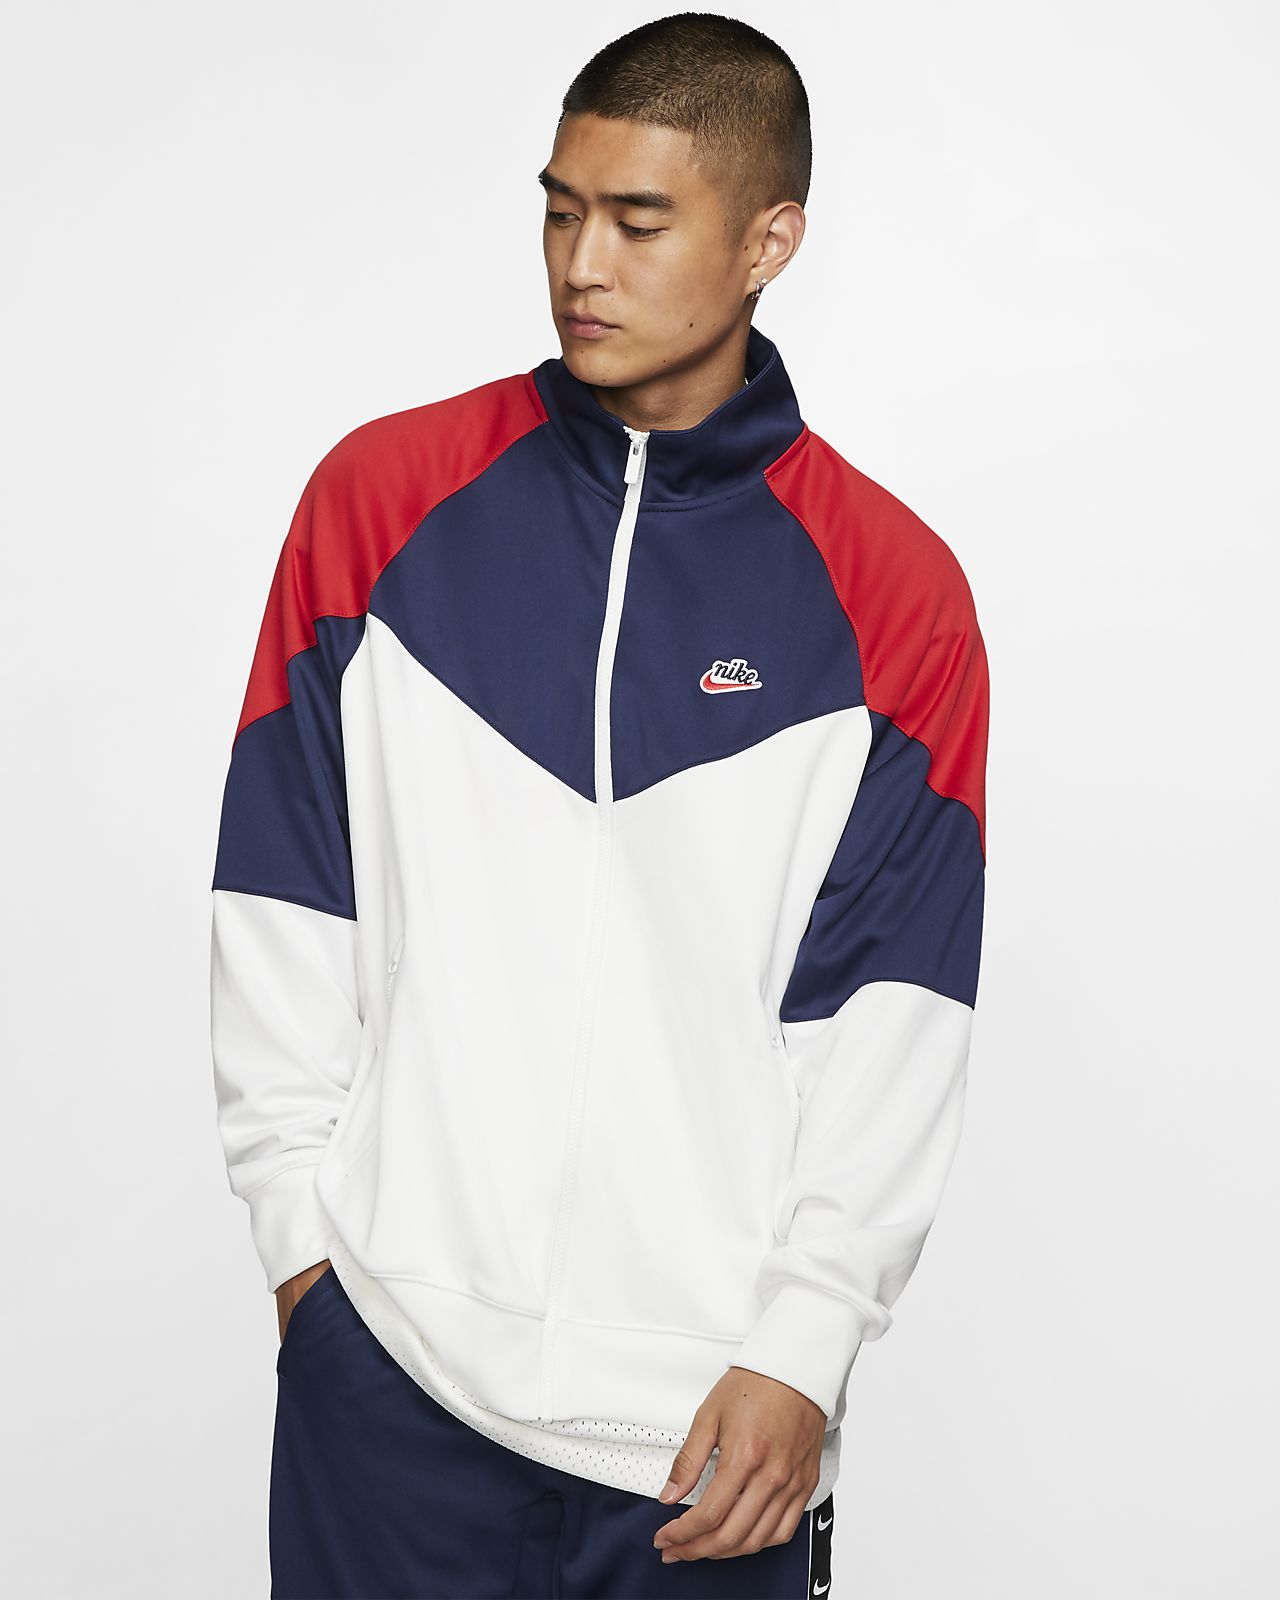 newest collection the latest coupon code Nike Sportswear Windrunner Men's Jacket